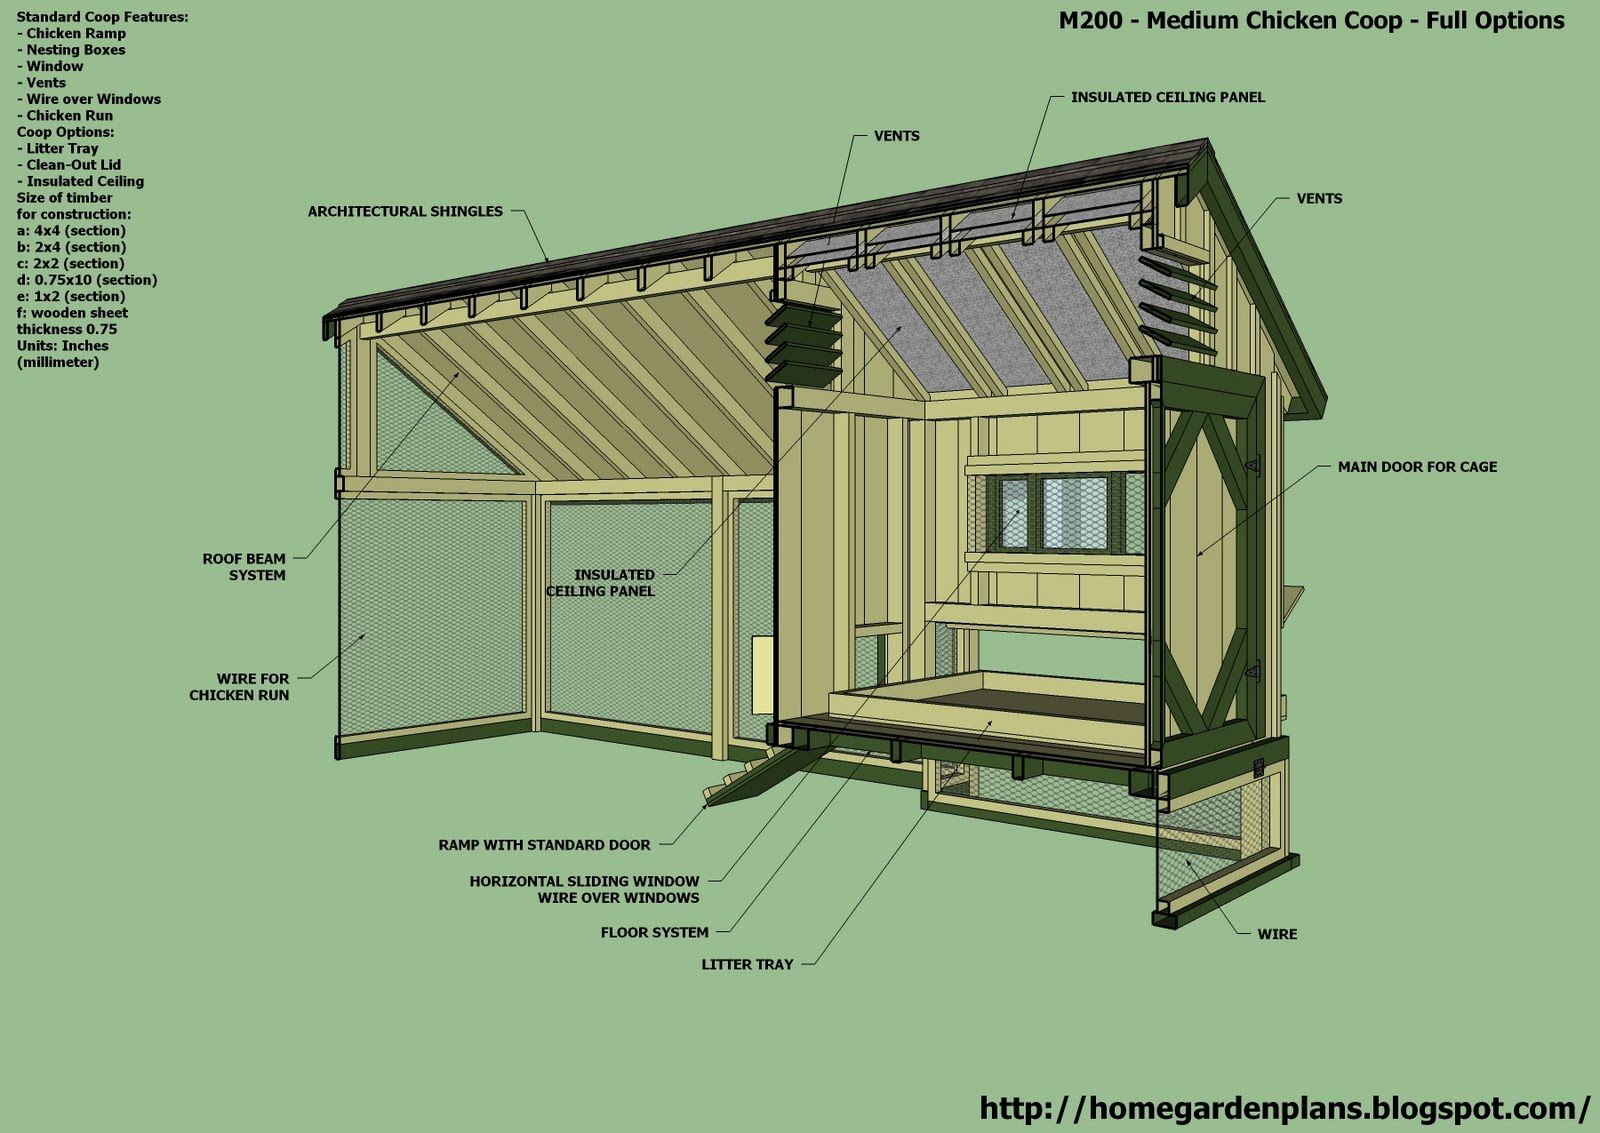 Building A Chicken Coop For Dummies Home Garden Plans M200 Perfect Options Backyard